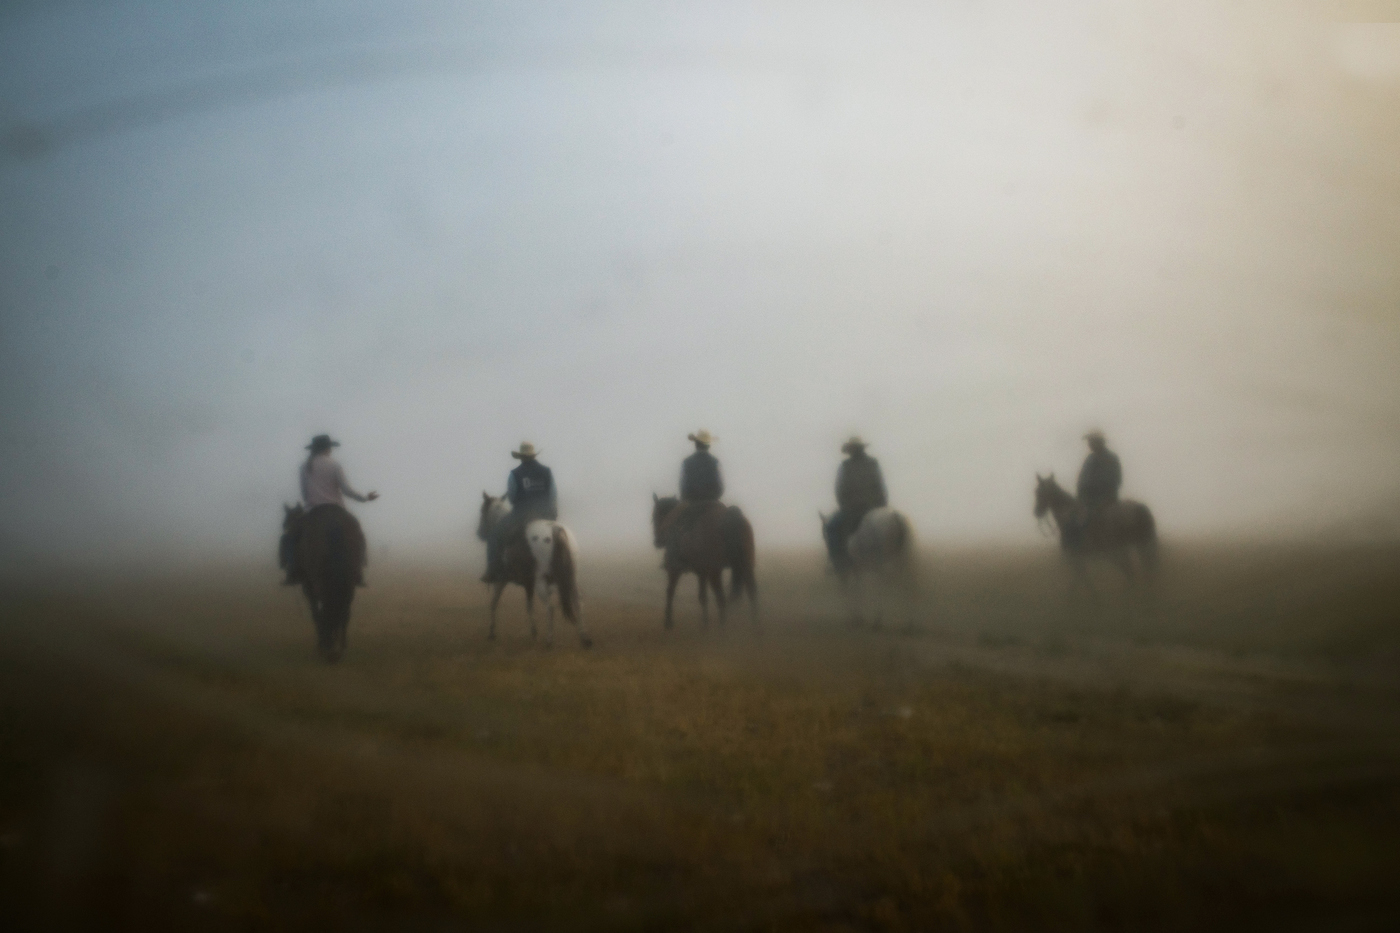 """45º25'37.9""""N, 102º17'10.7""""W. 113 miles from the nearest McDonald's. The Arneson family and their employee Riley Cihak ride their horses through thick morning fog on their ranch in the old town of Chance, SD on July 31, 2017. The Arnesons family moved from Montana to South Dakota due to rising land prices and taxes and slowly accumulated the entirety of what was once a small town in the area with a post office until the late 1950s."""